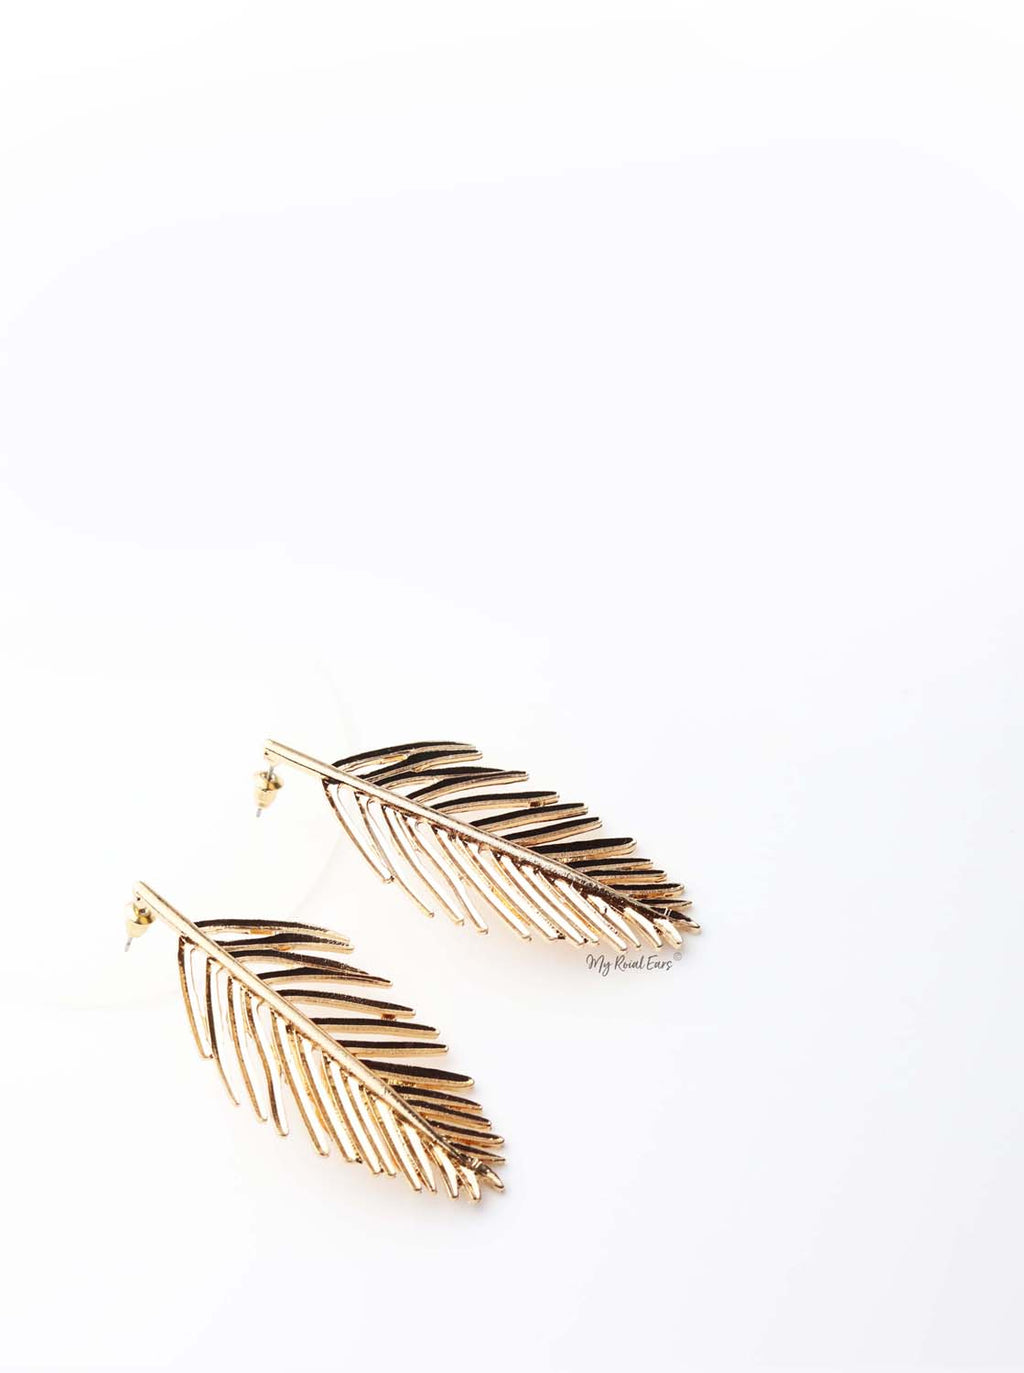 Daphne-gold plated leaf statement stud earrings - My Roial Ears LTD